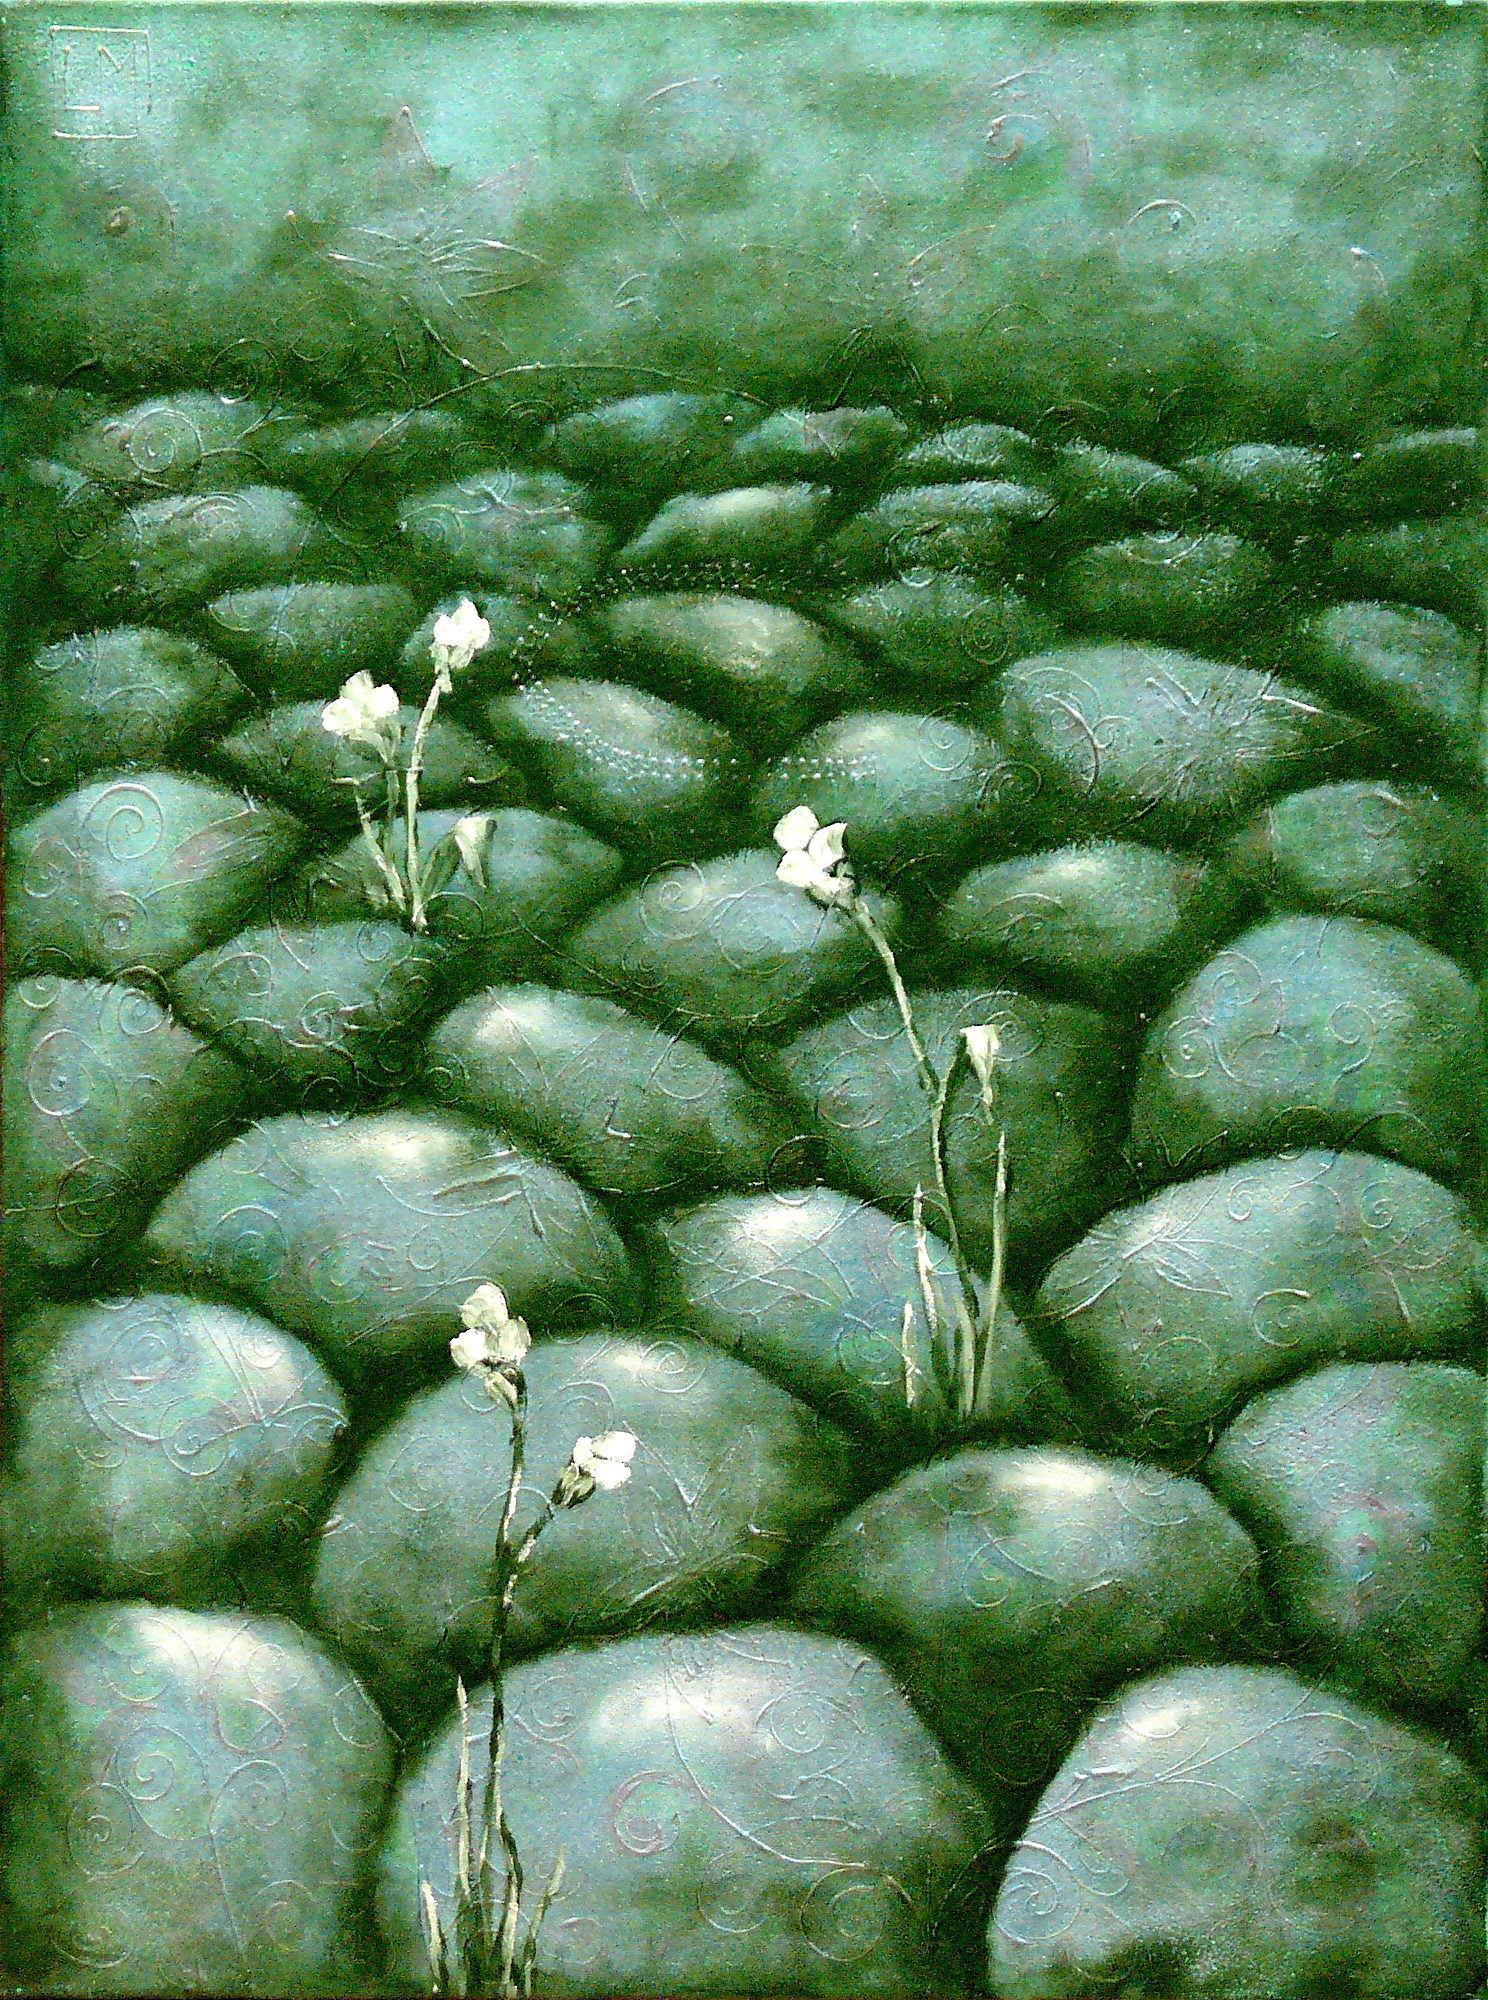 Flowers on the Stones